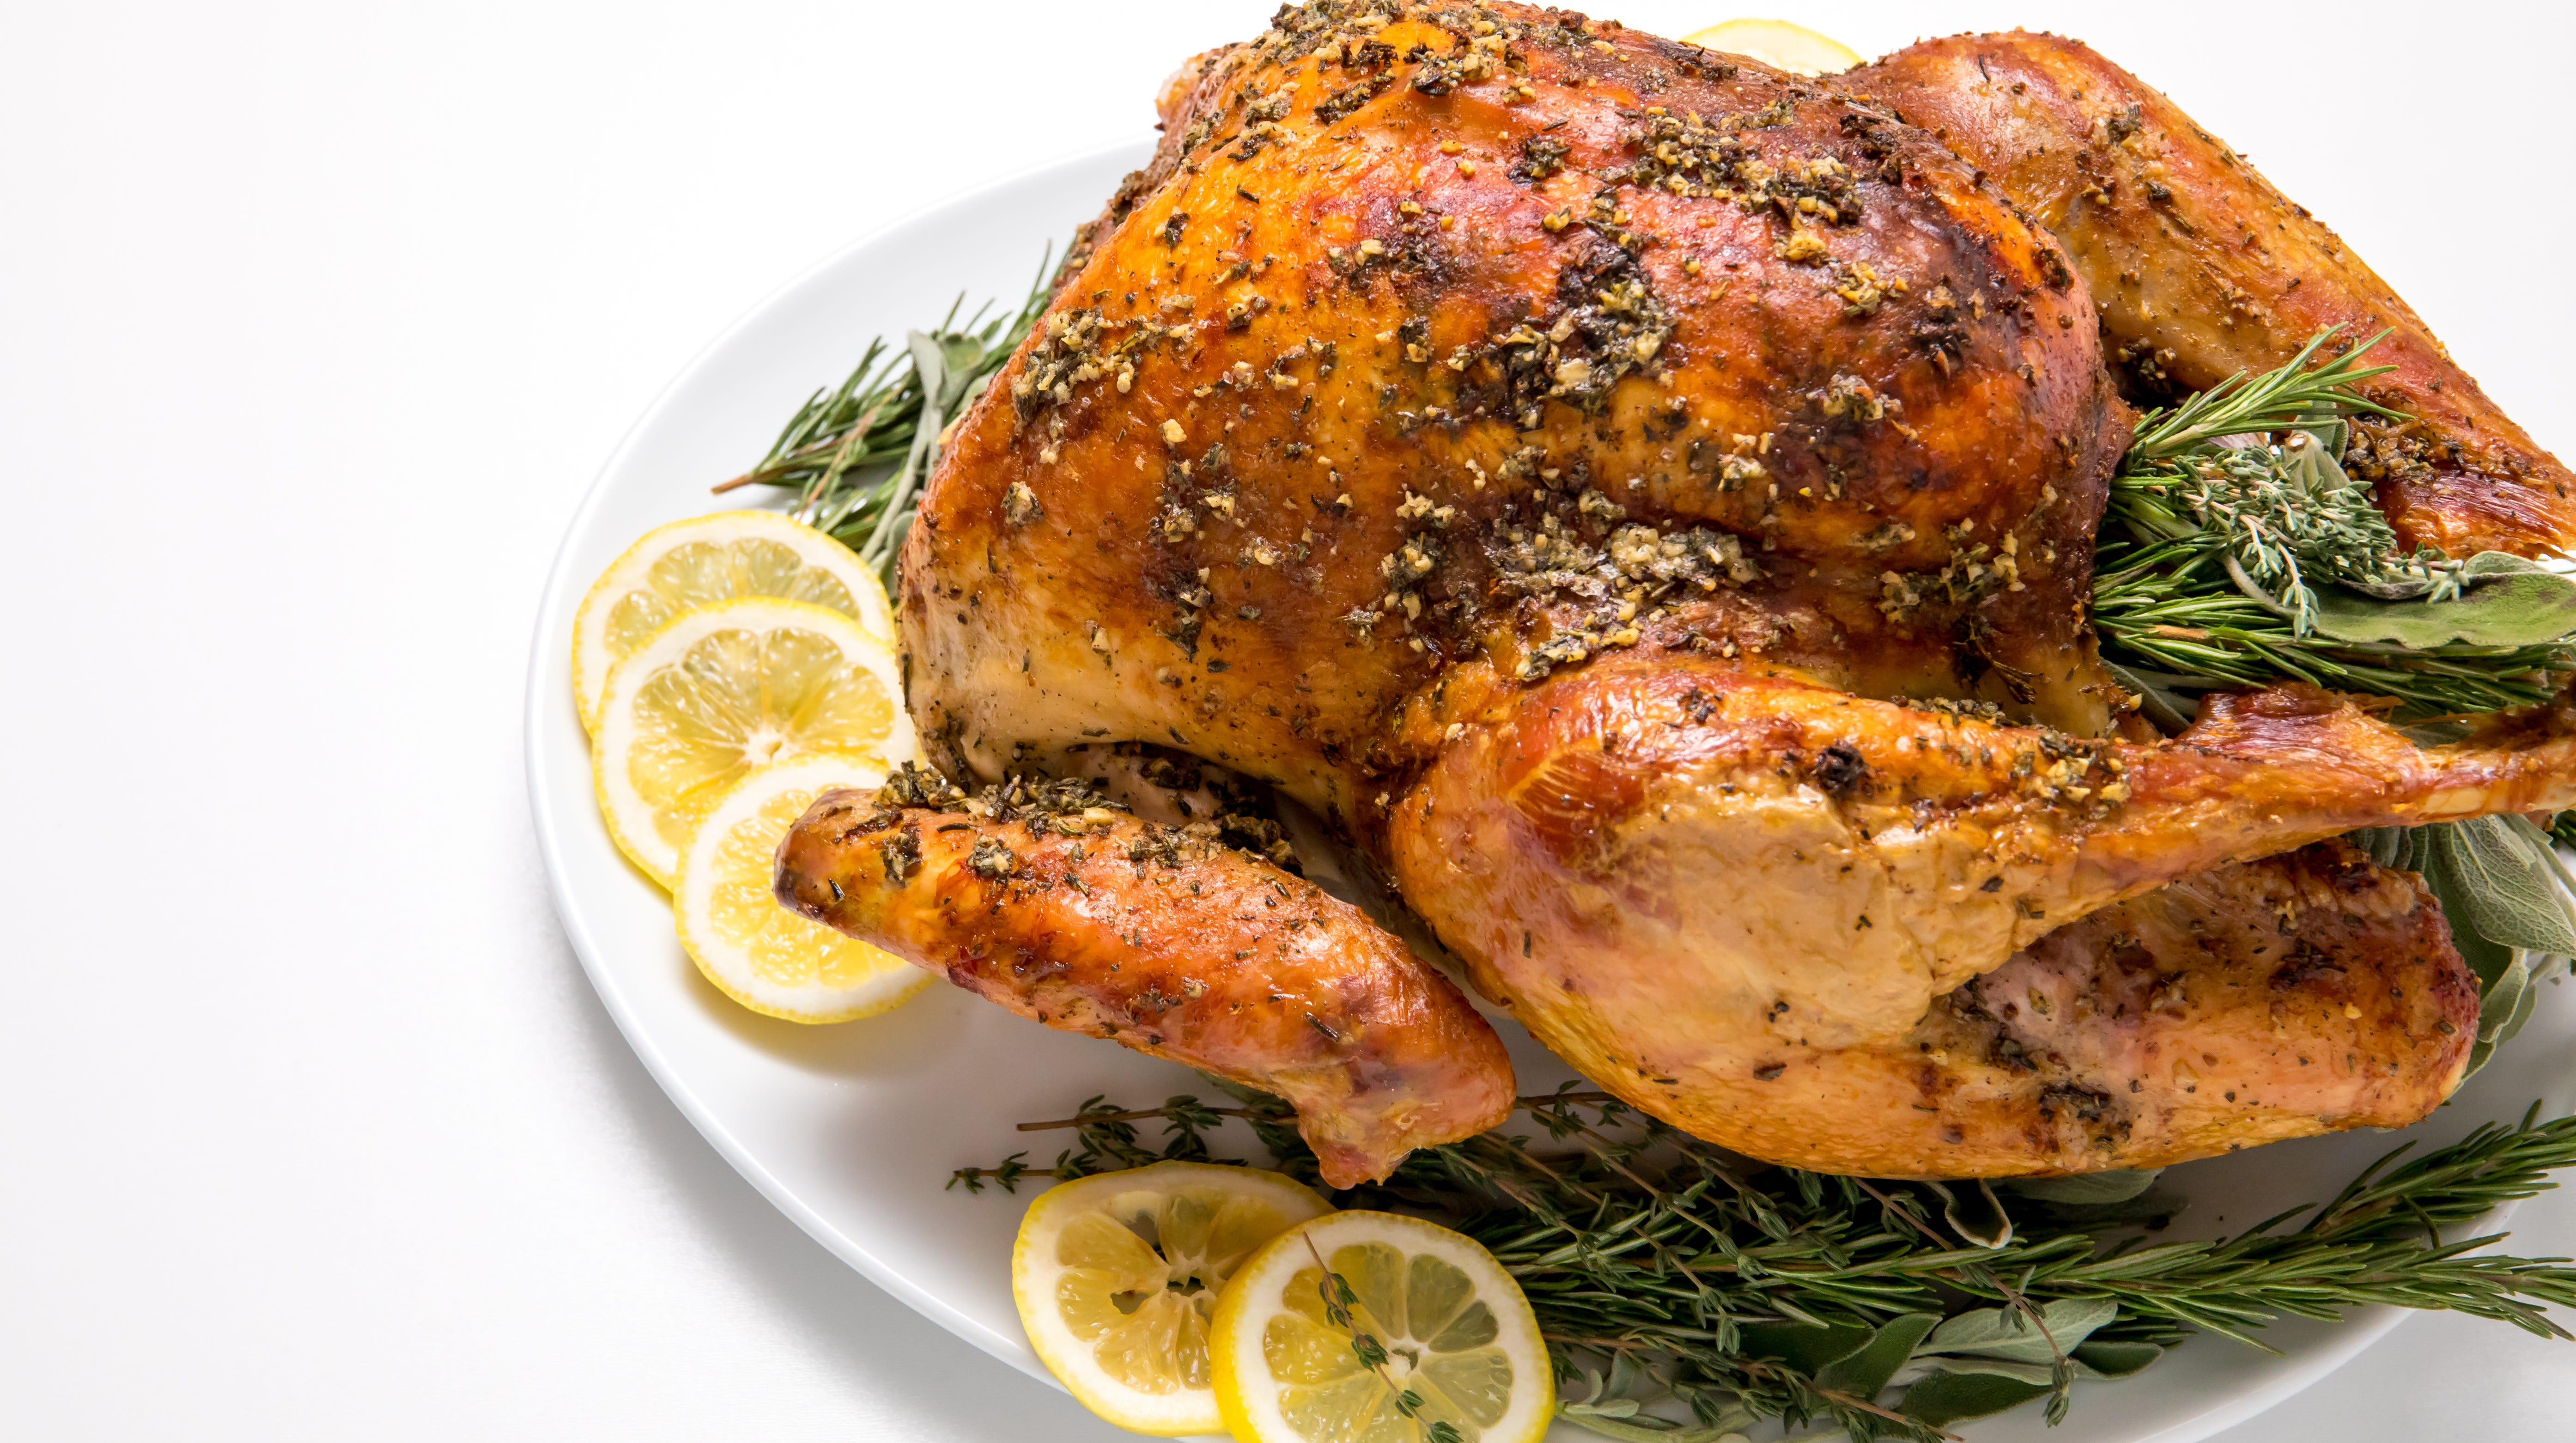 Need an easy, no-fuss Thanksgiving turkey recipe that will impress even the hardest-to-please guests? Whether you're new to cooking a turkey or simply want a fast, fail-proof way to prepare the proverbial bird, this fuss-free Thanksgiving turkey, inspired by Tastes Better From Scratch, is the perfect recipe for you!